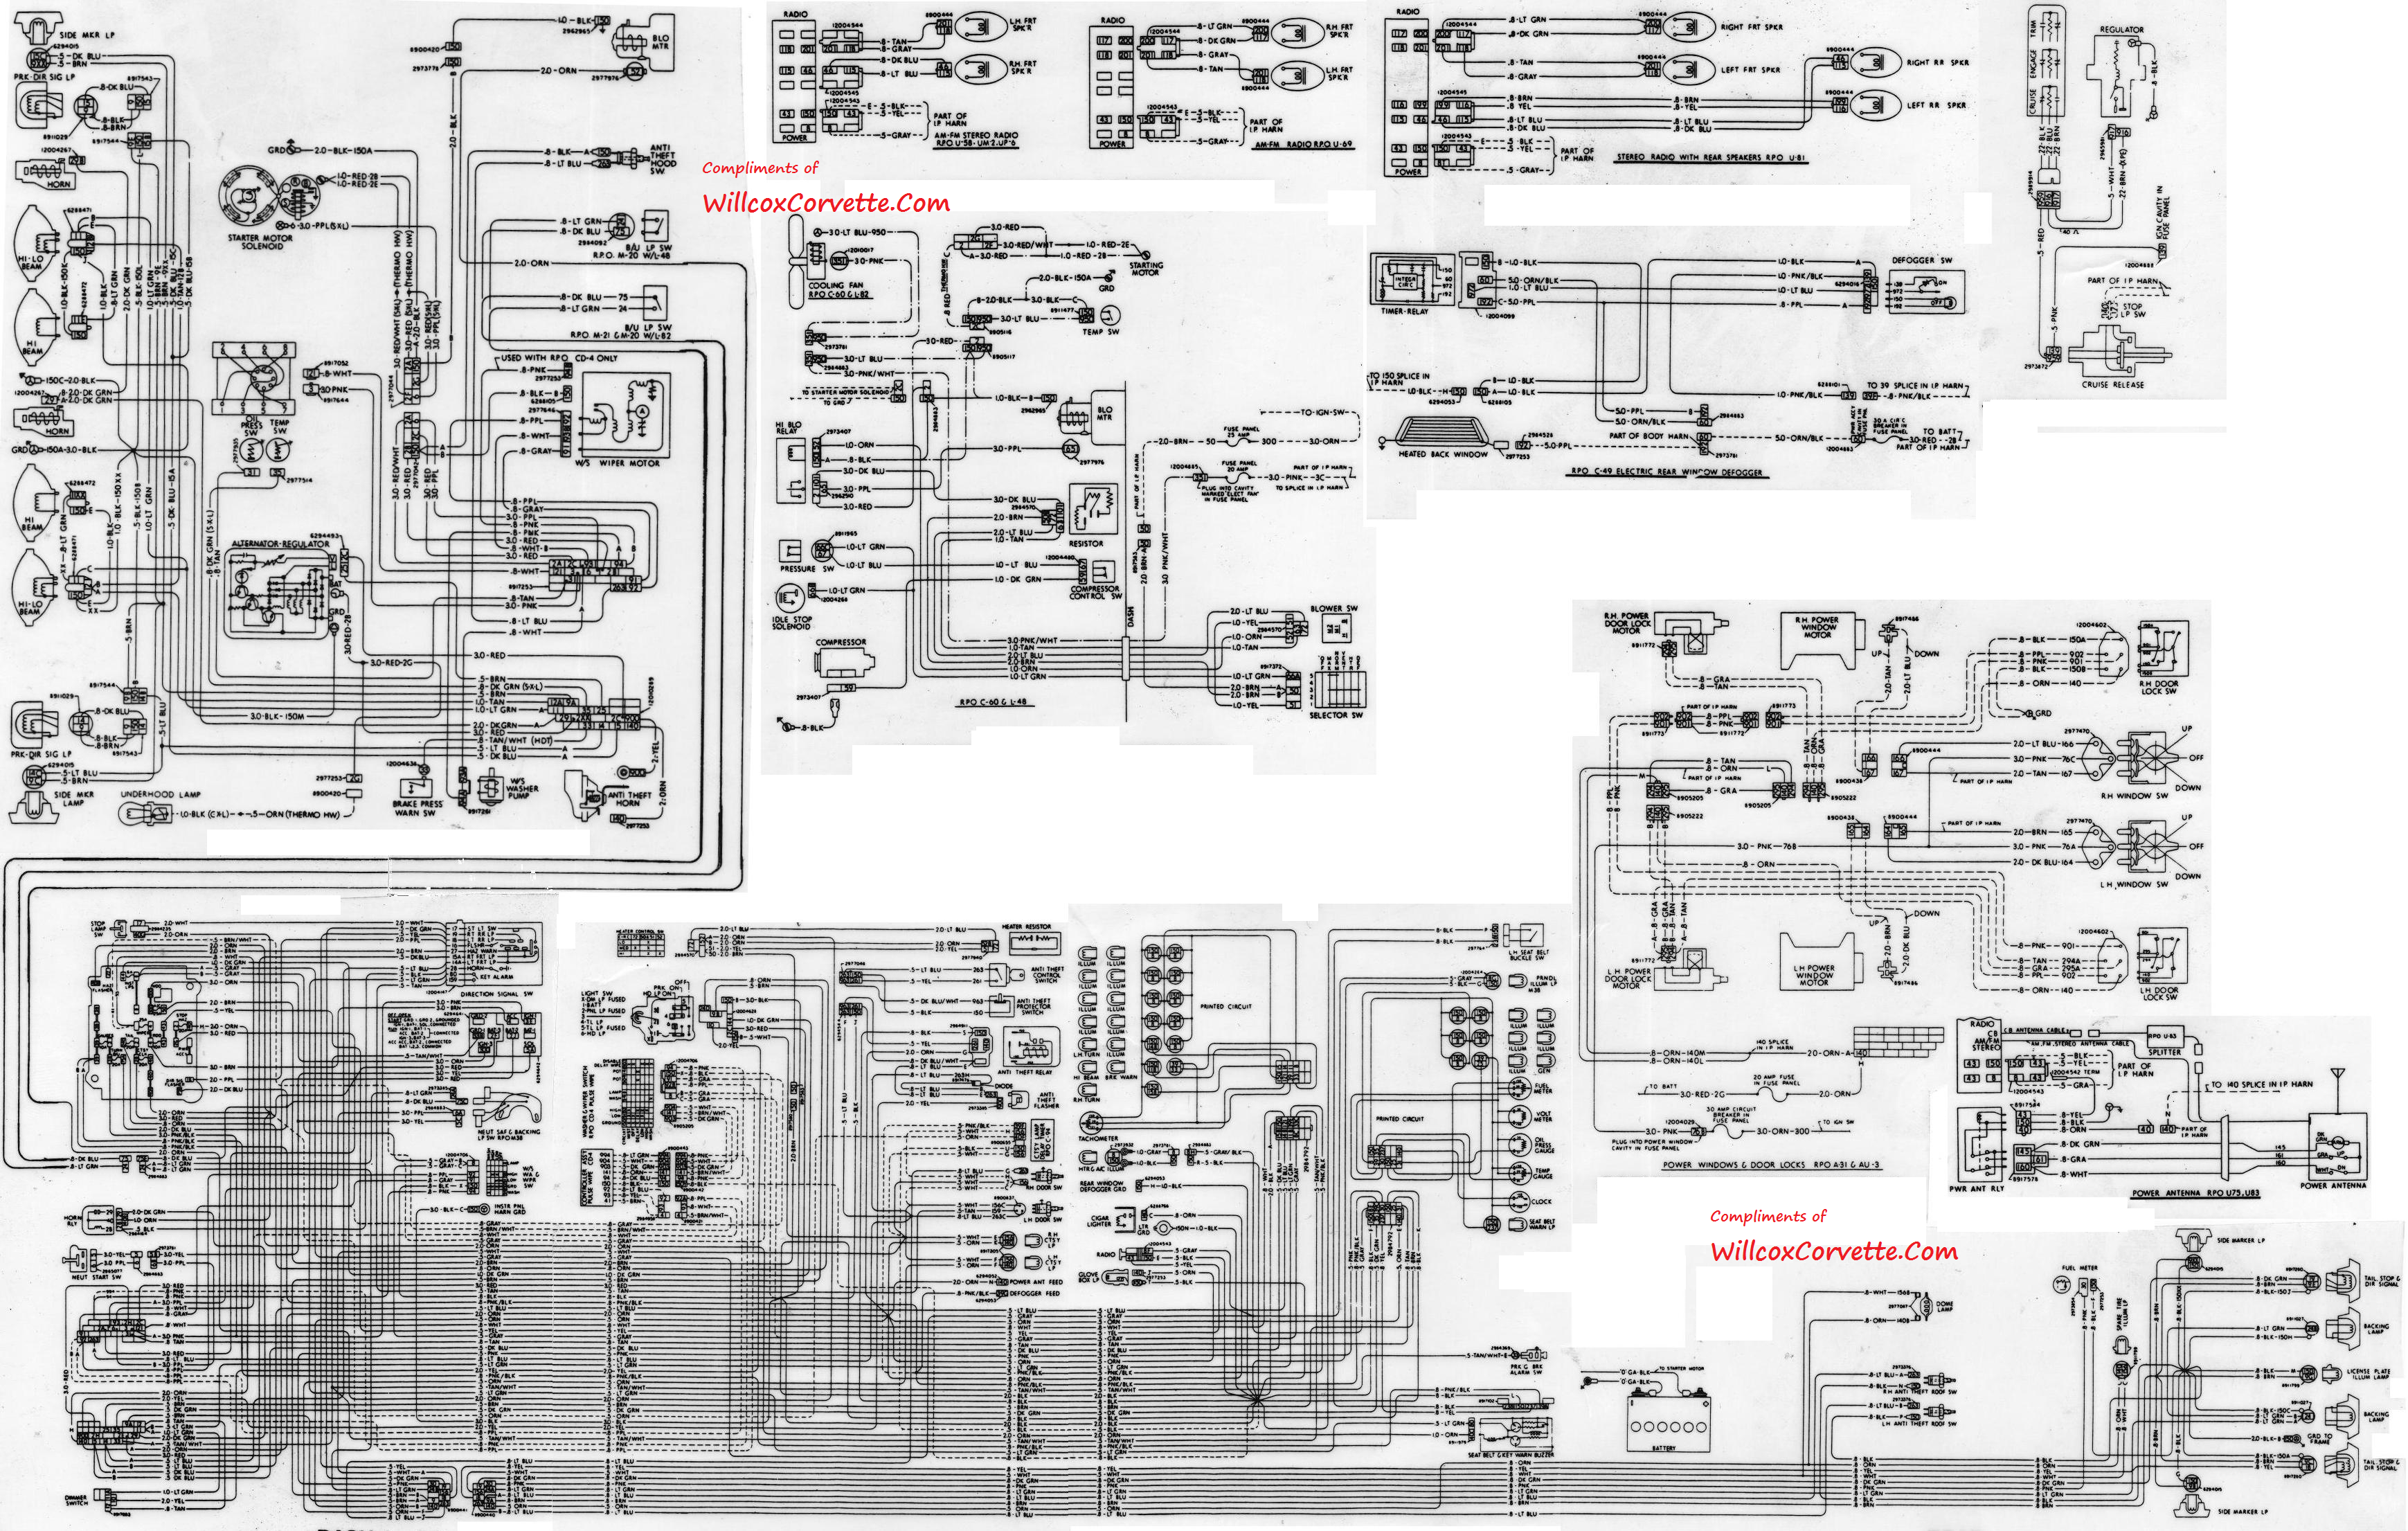 79 COMBINED TRACER SCHEMATIC 1979 corvette wiring diagram aux fan wiring diagram 1979 corvette corvette wiring schematic at soozxer.org